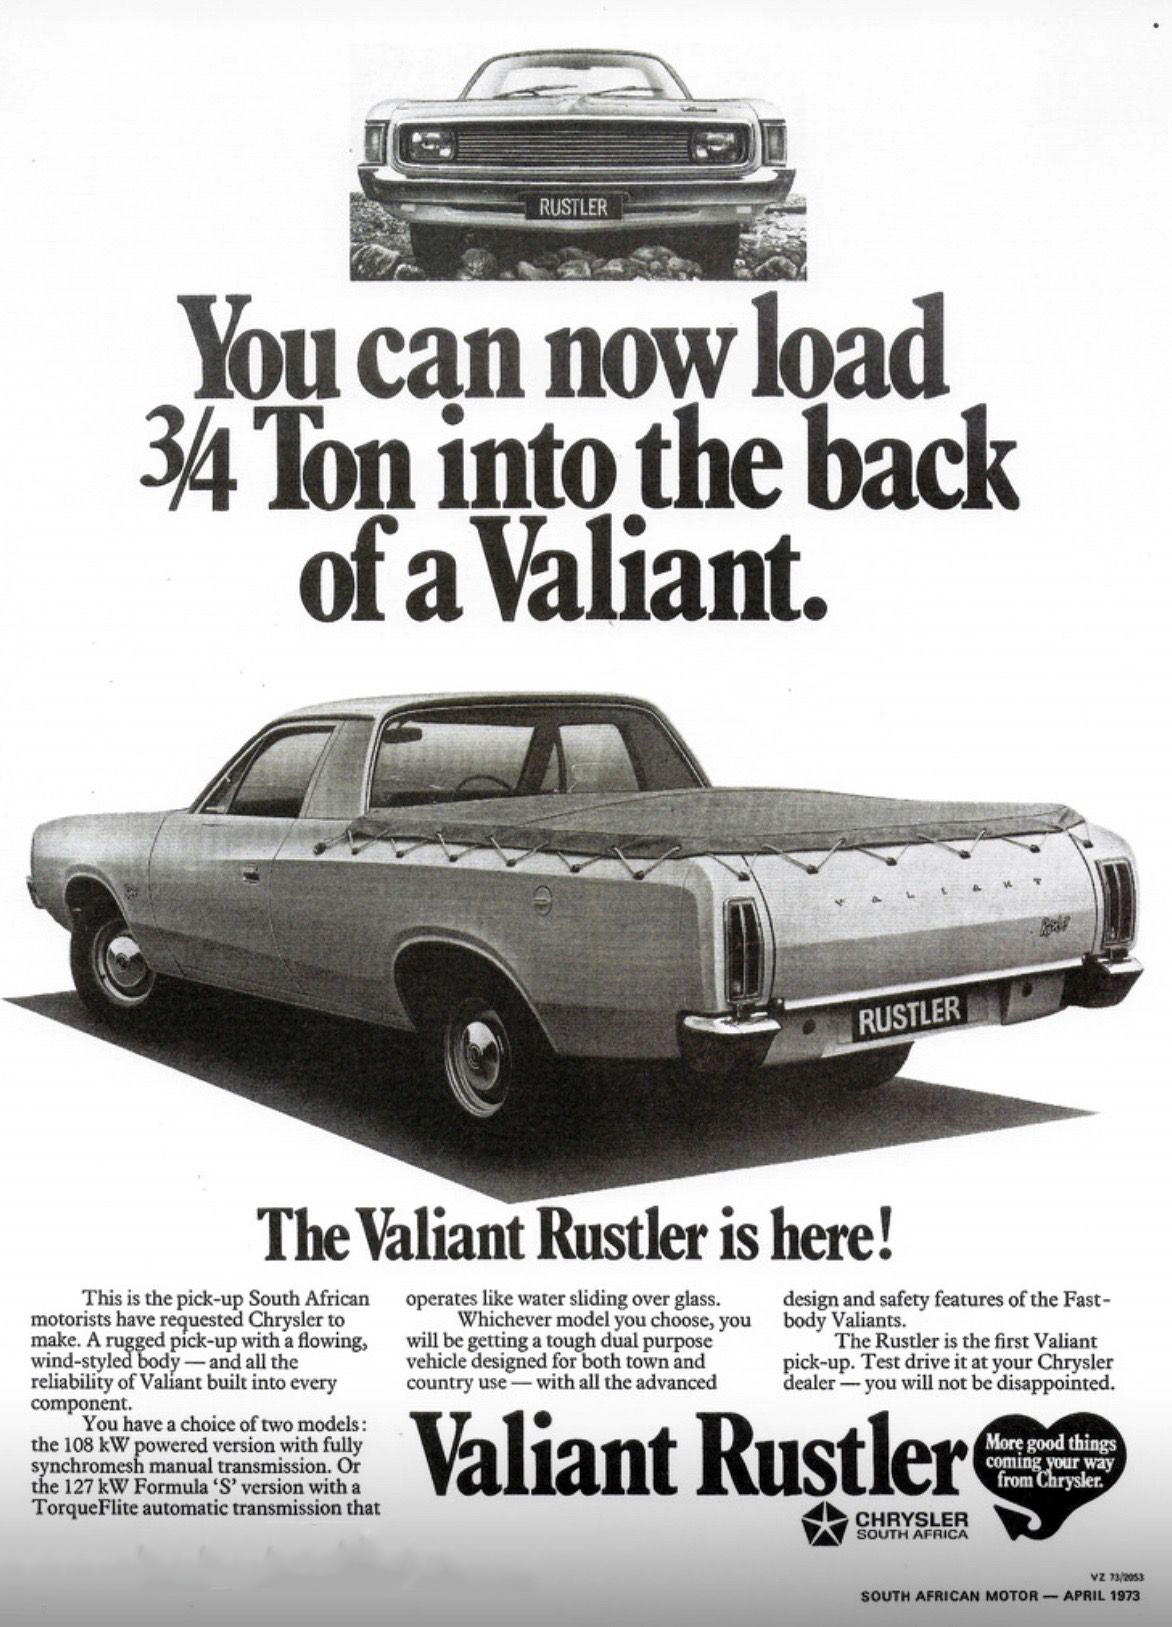 1973 Chrysler Valiant Rustler Ad (South Africa)